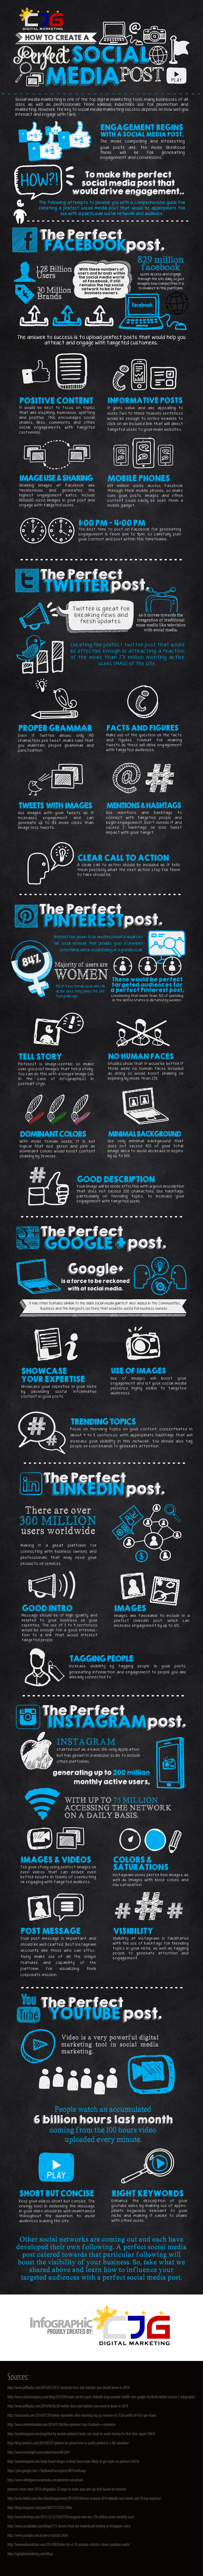 Create-a-Perfect-Social-Media-Post-on-Top-7-Networks